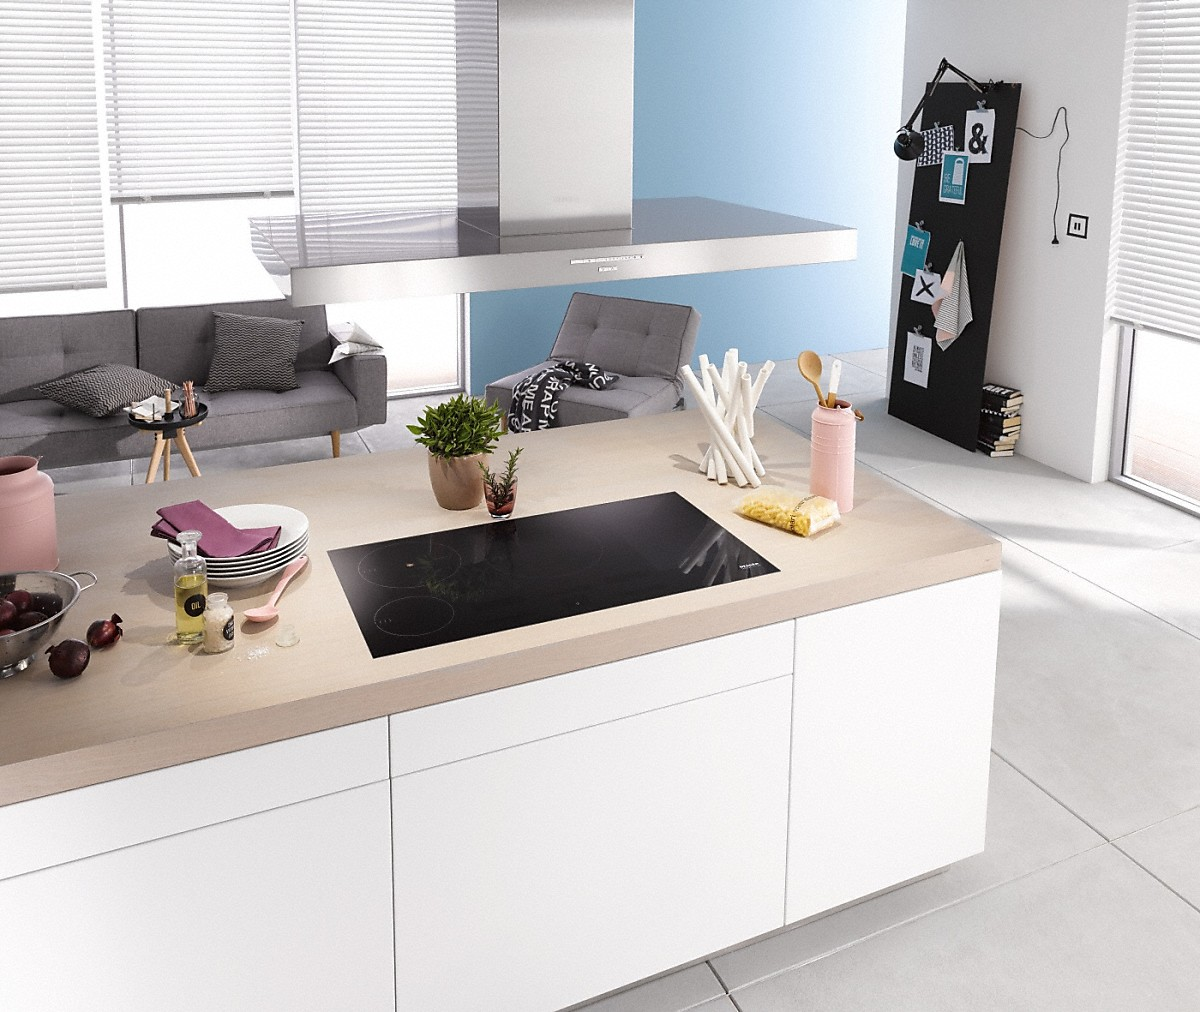 Model: 28424655USA | Miele Island decor hood with energy-efficient LED lighting and backlit controls for easy use.